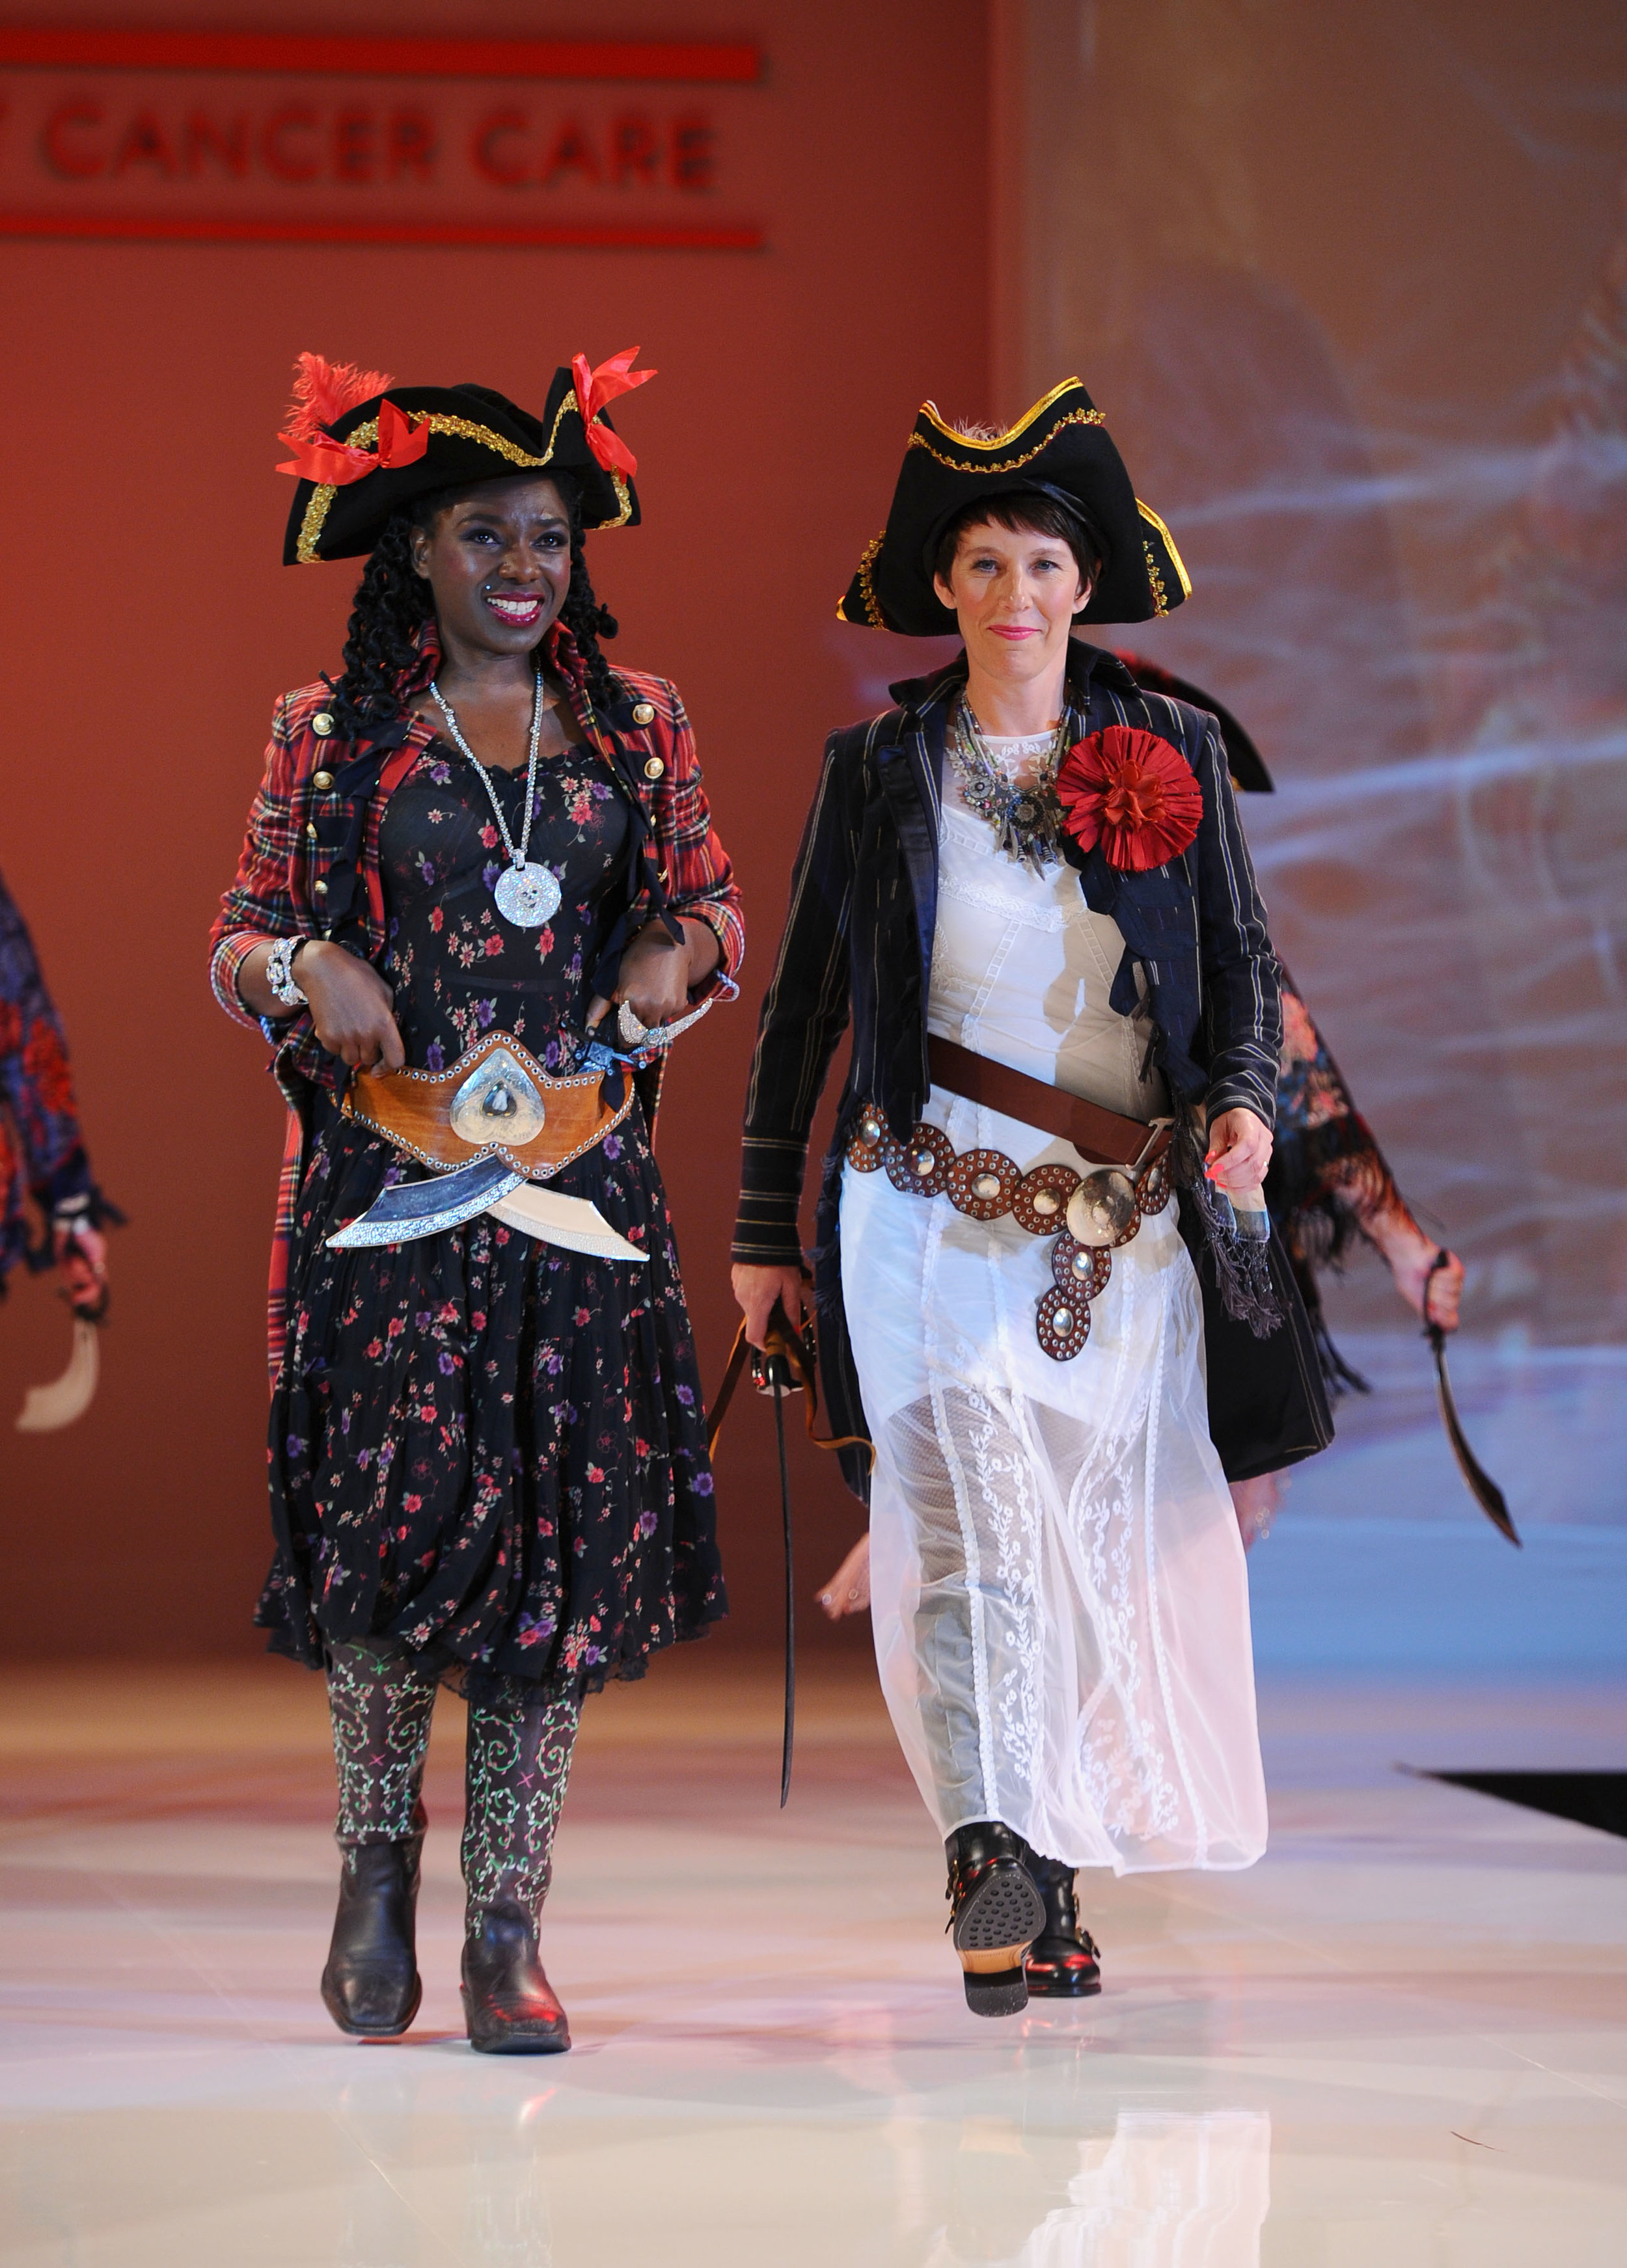 I never in a million years thought I would enjoy dressing like a pirate, but I loved it!